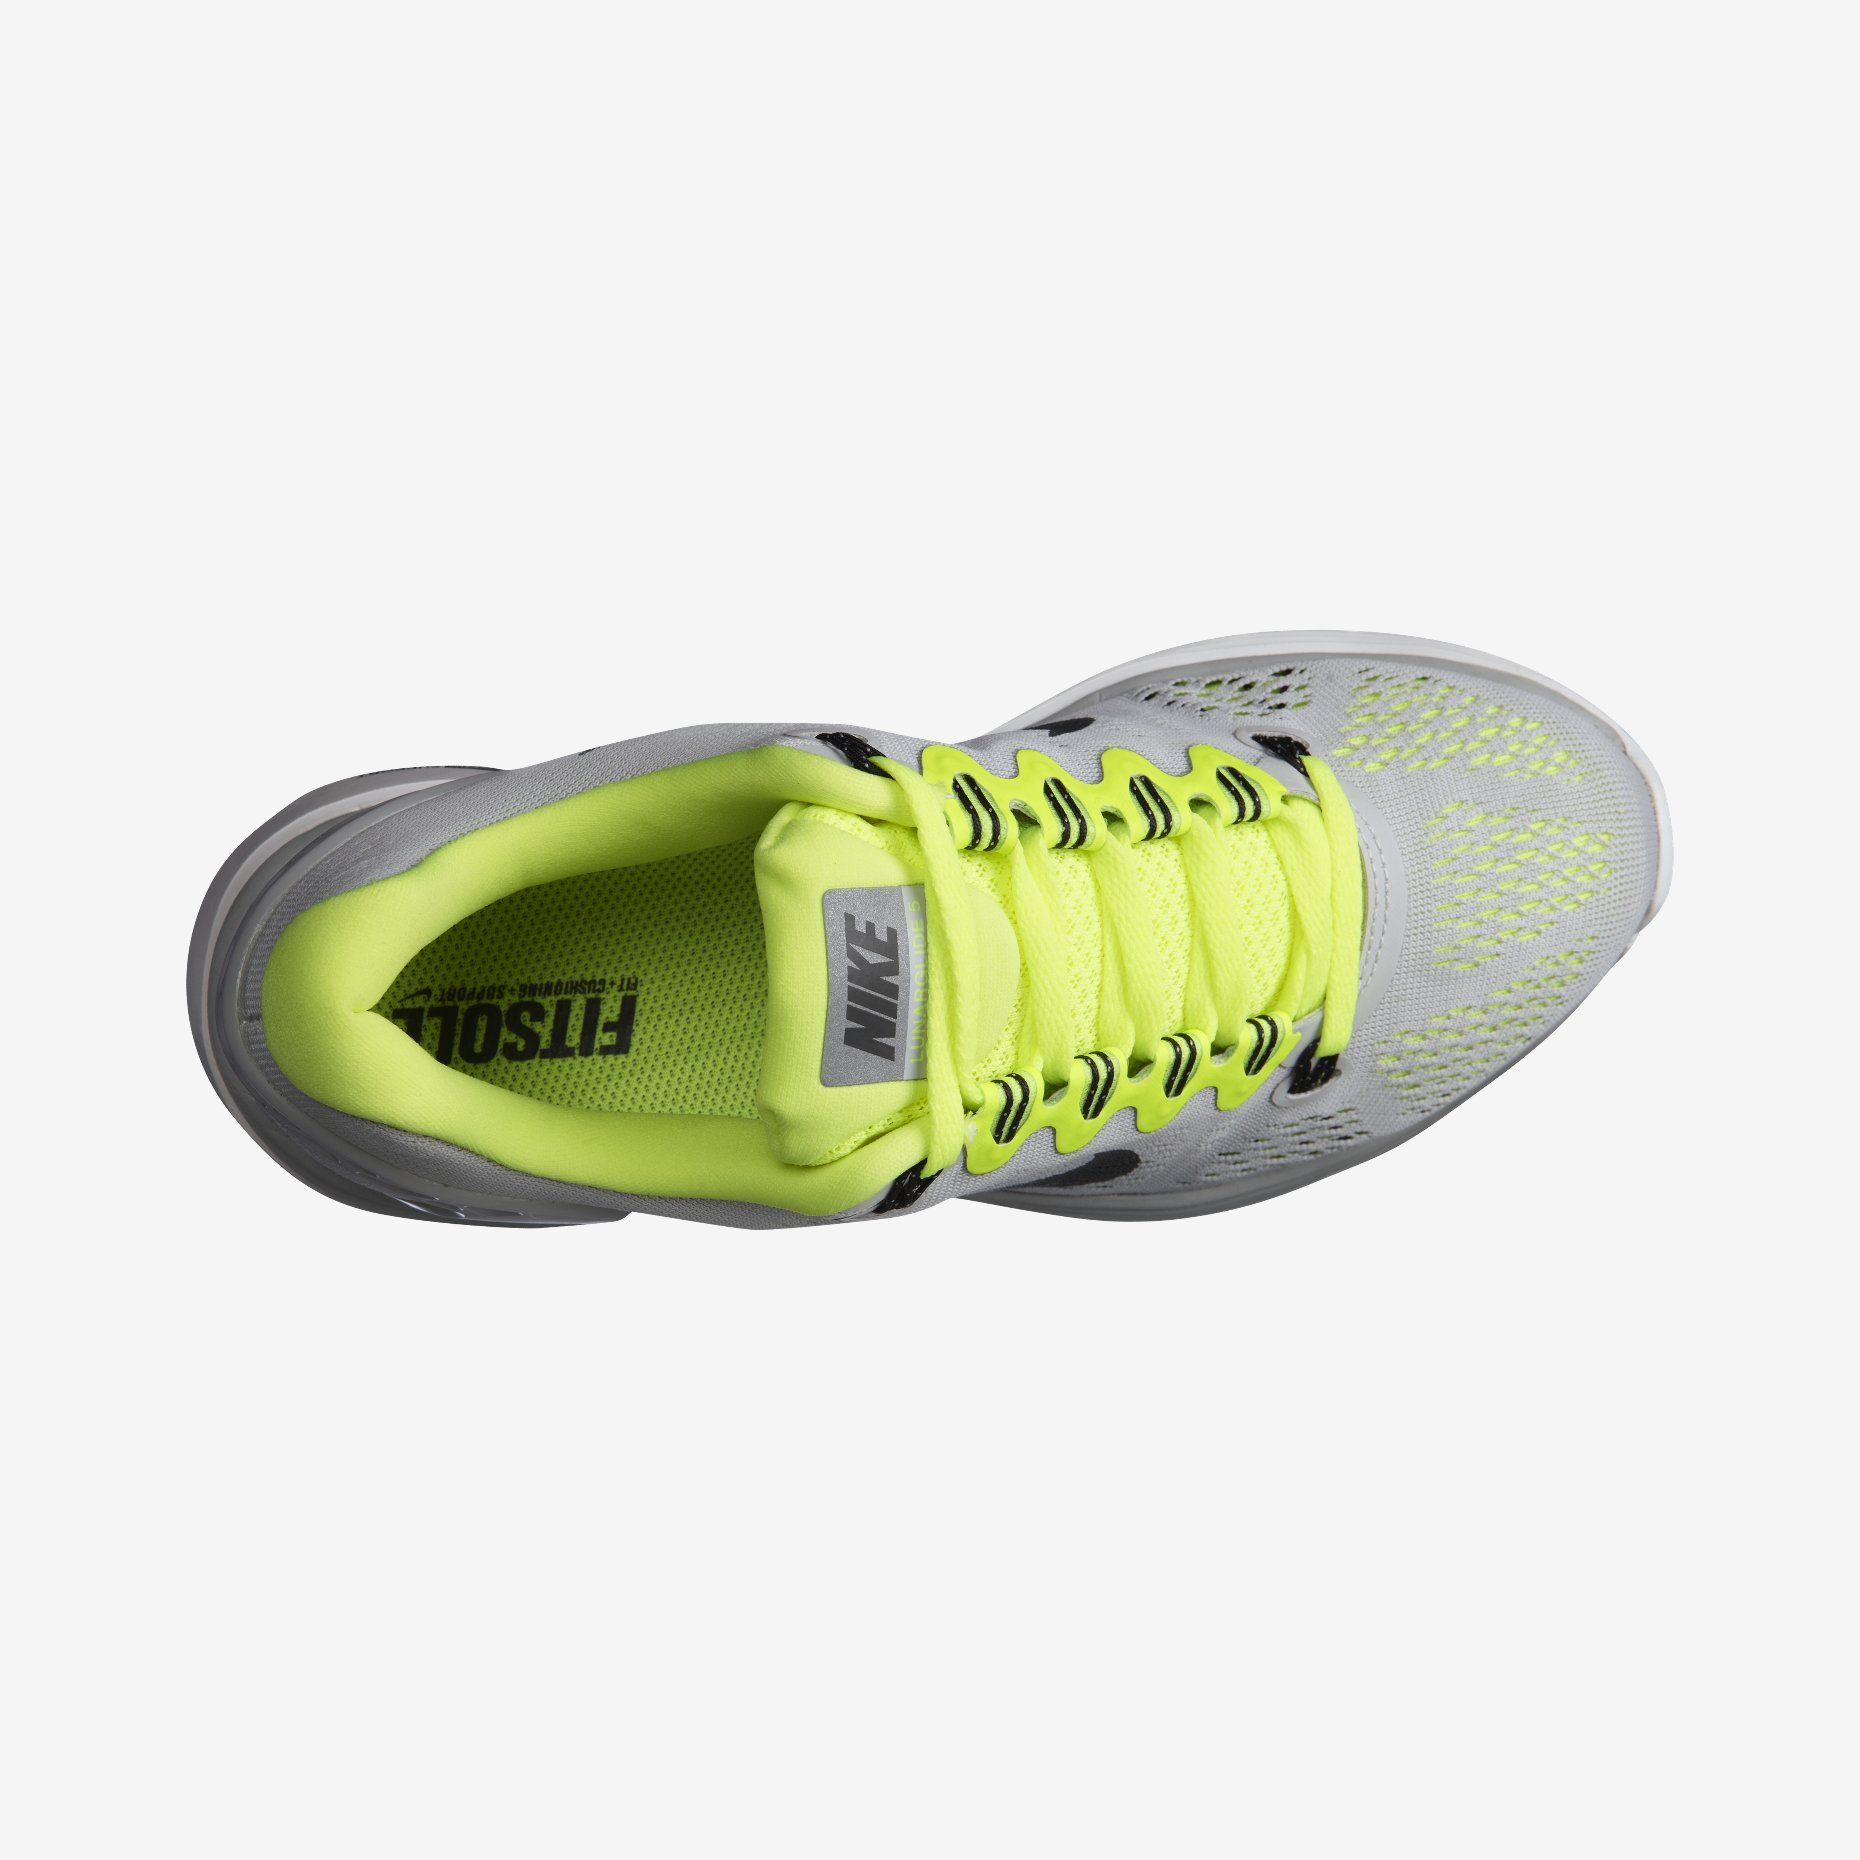 4a1f1bebd3f ... where can i buy nike lunarglide 5 grey and neon yellow. 6046a f806c